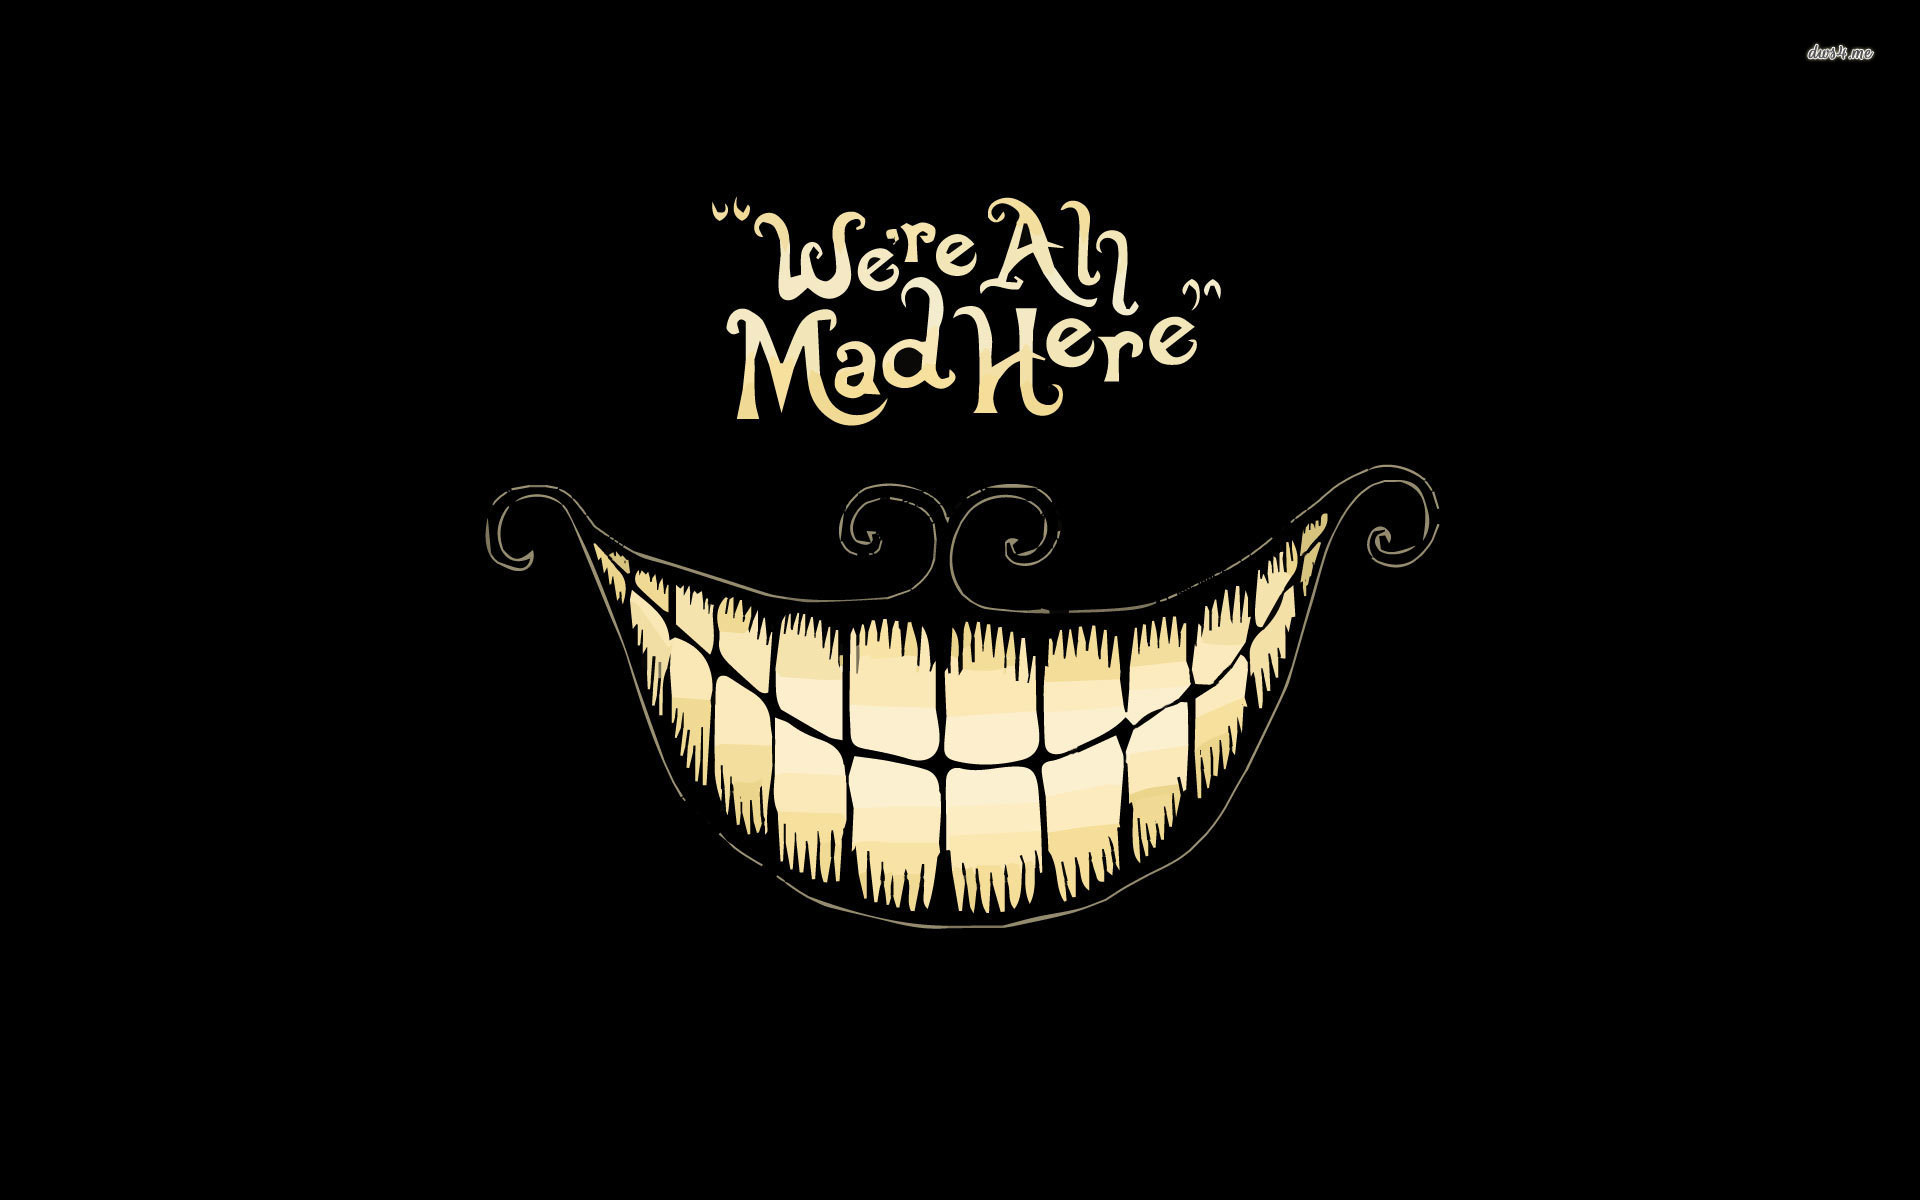 1920x1200 ... We're all mad here, Cheshire cat - Alice in Wonderland wallpaper   ...